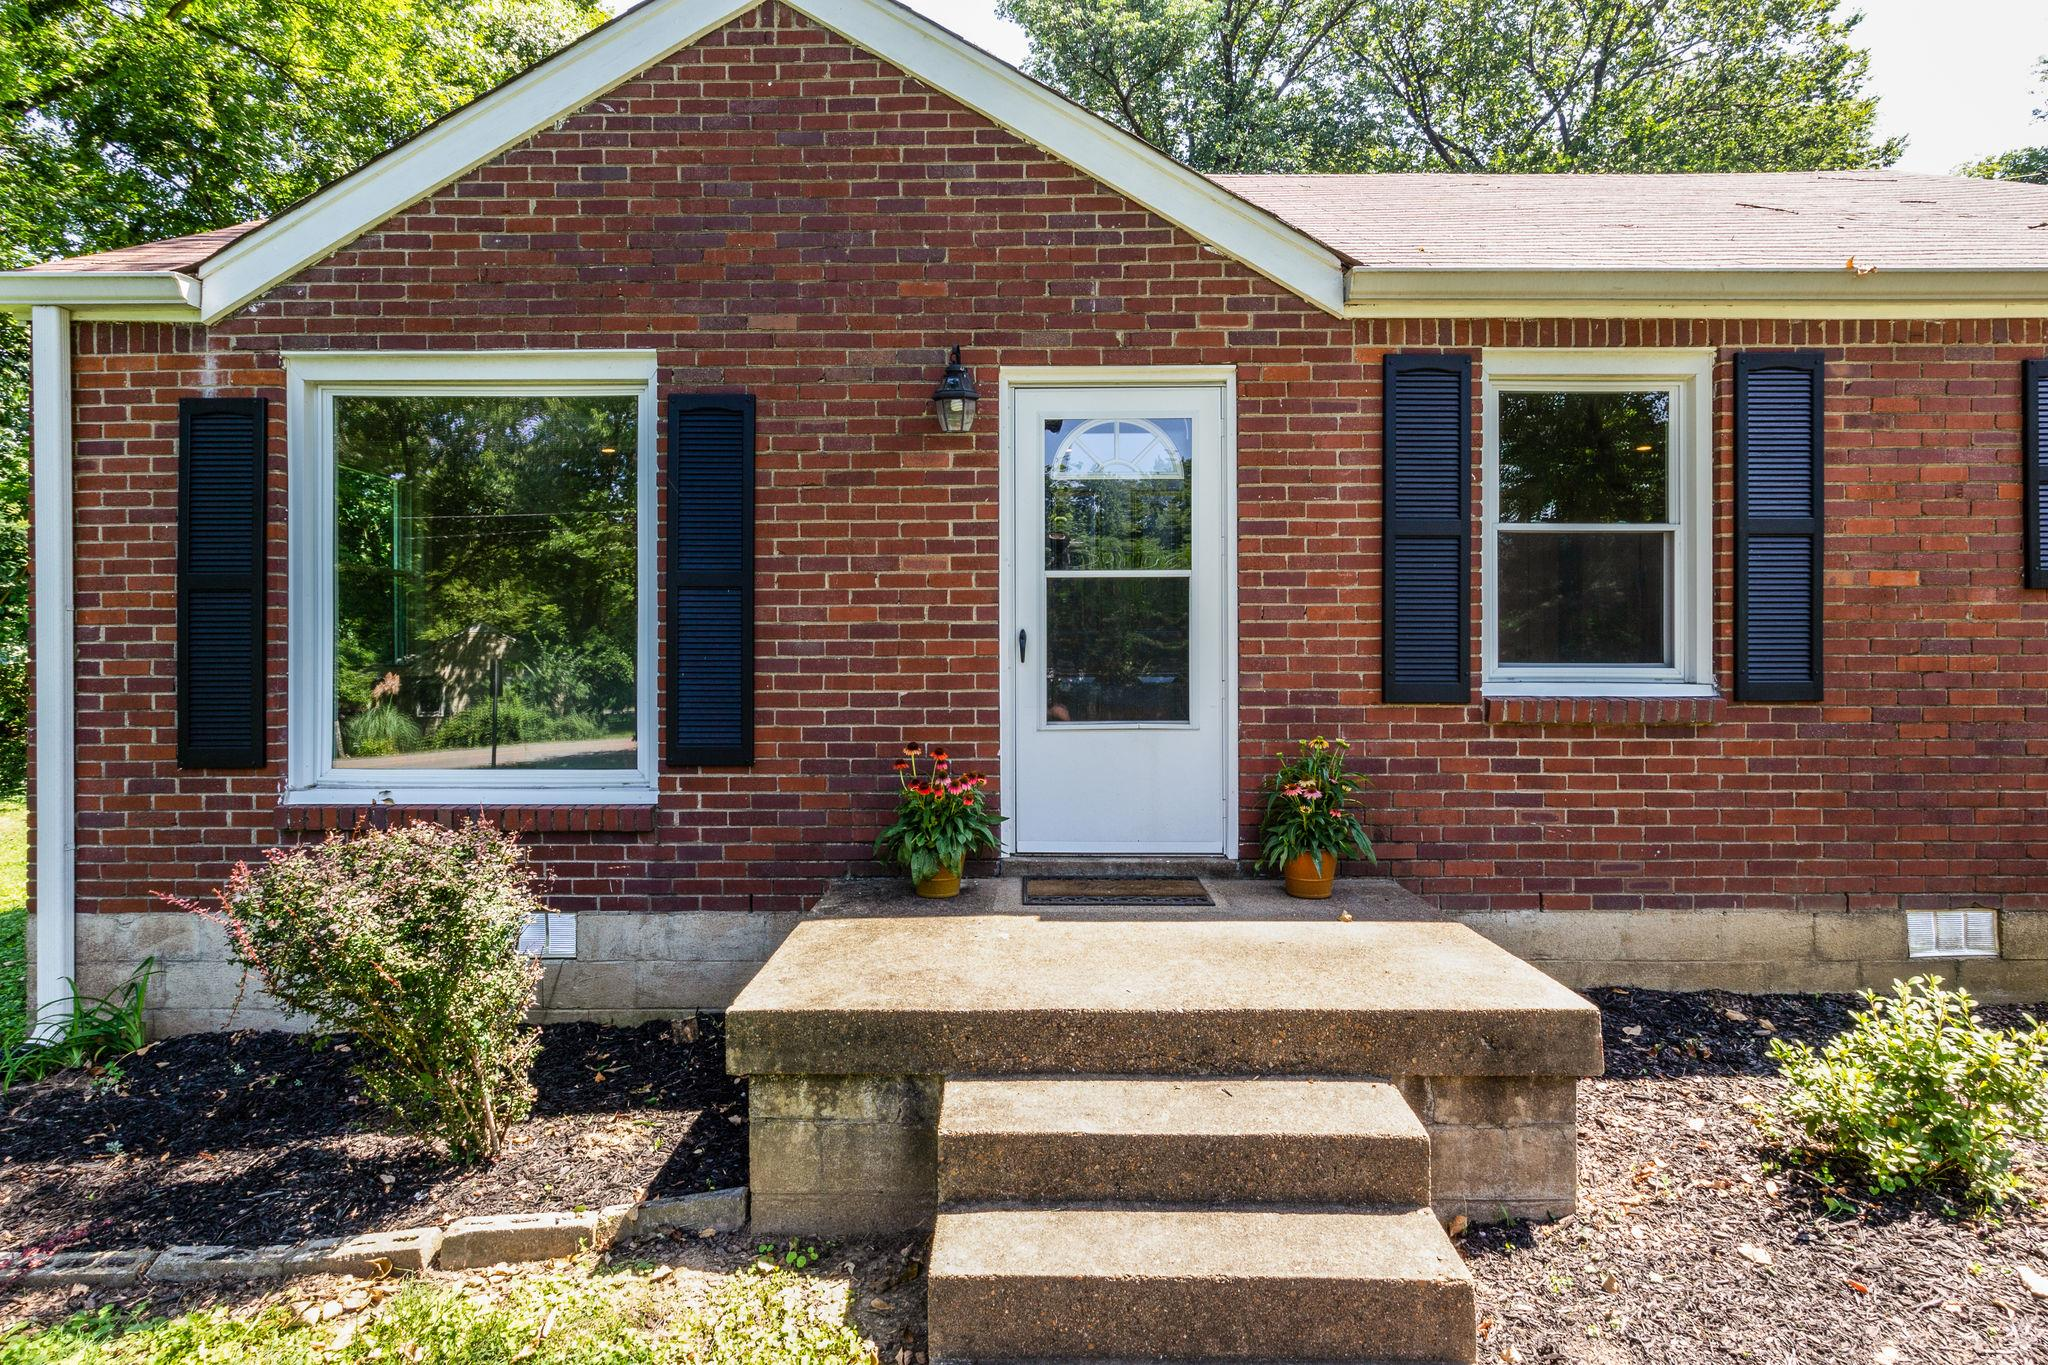 710 Drummond Dr, Nashville, TN 37211 - Nashville, TN real estate listing